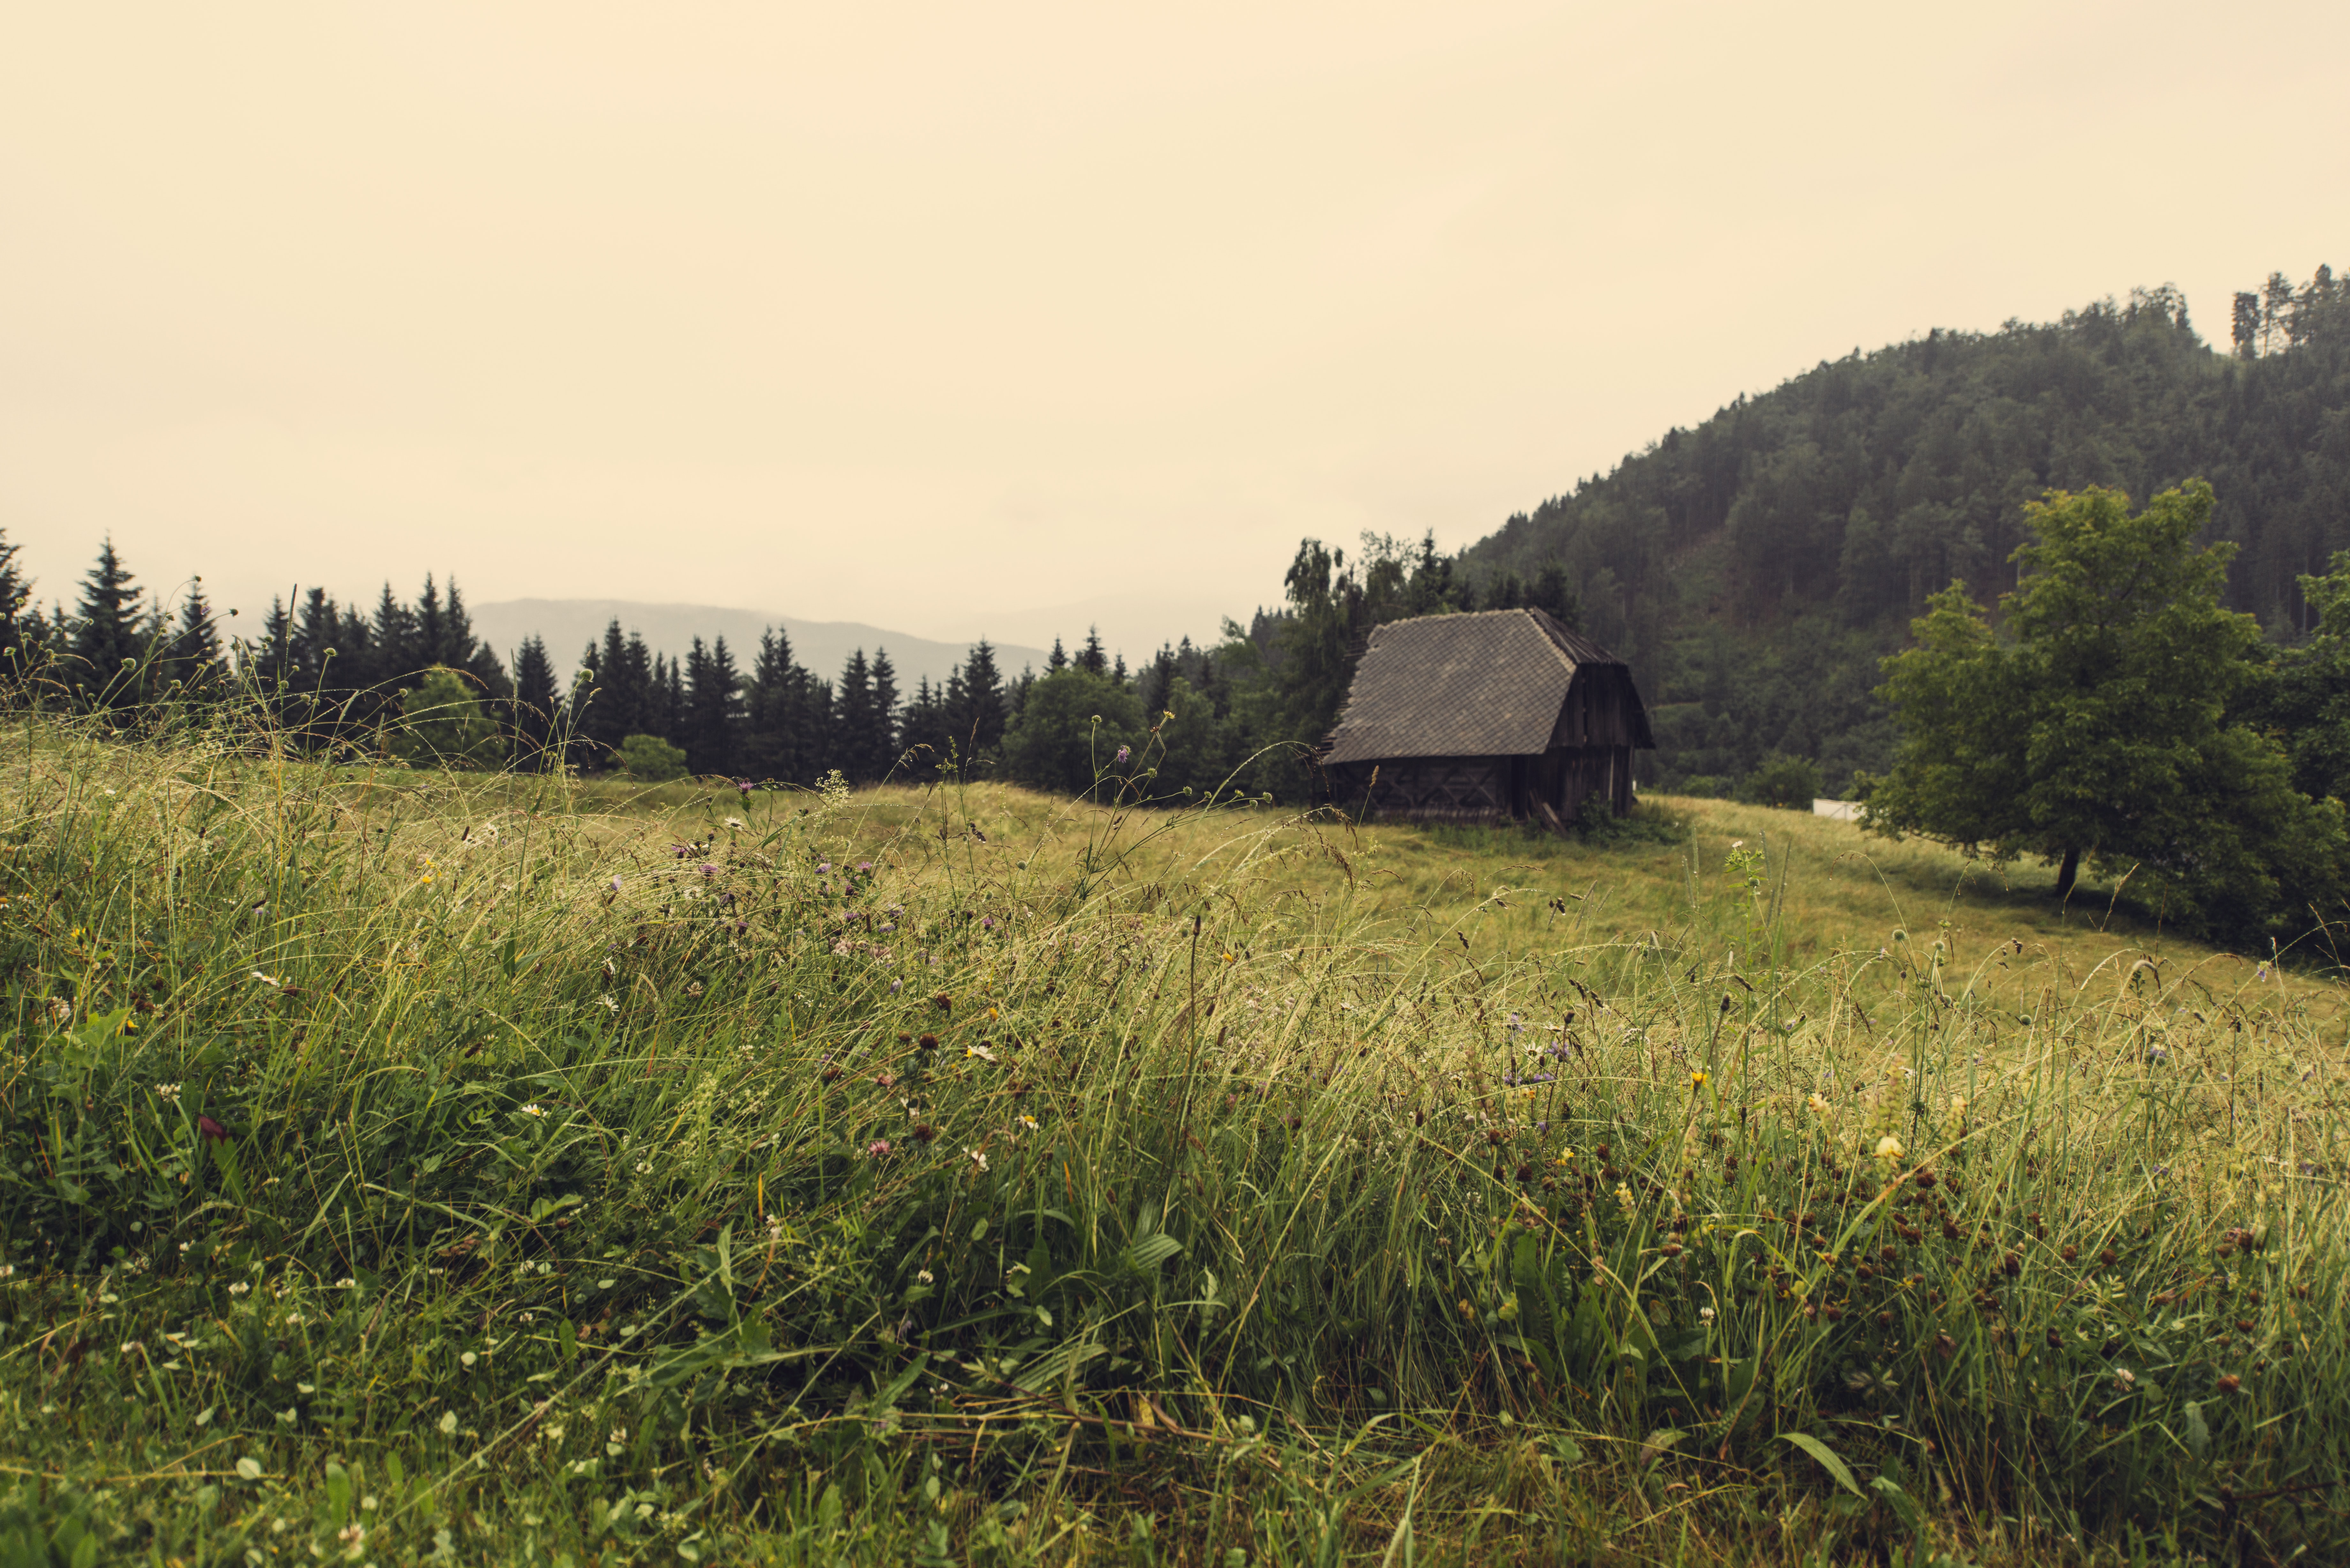 Small cottage in the mountains with wildflowers, grass, and trees surrounding it